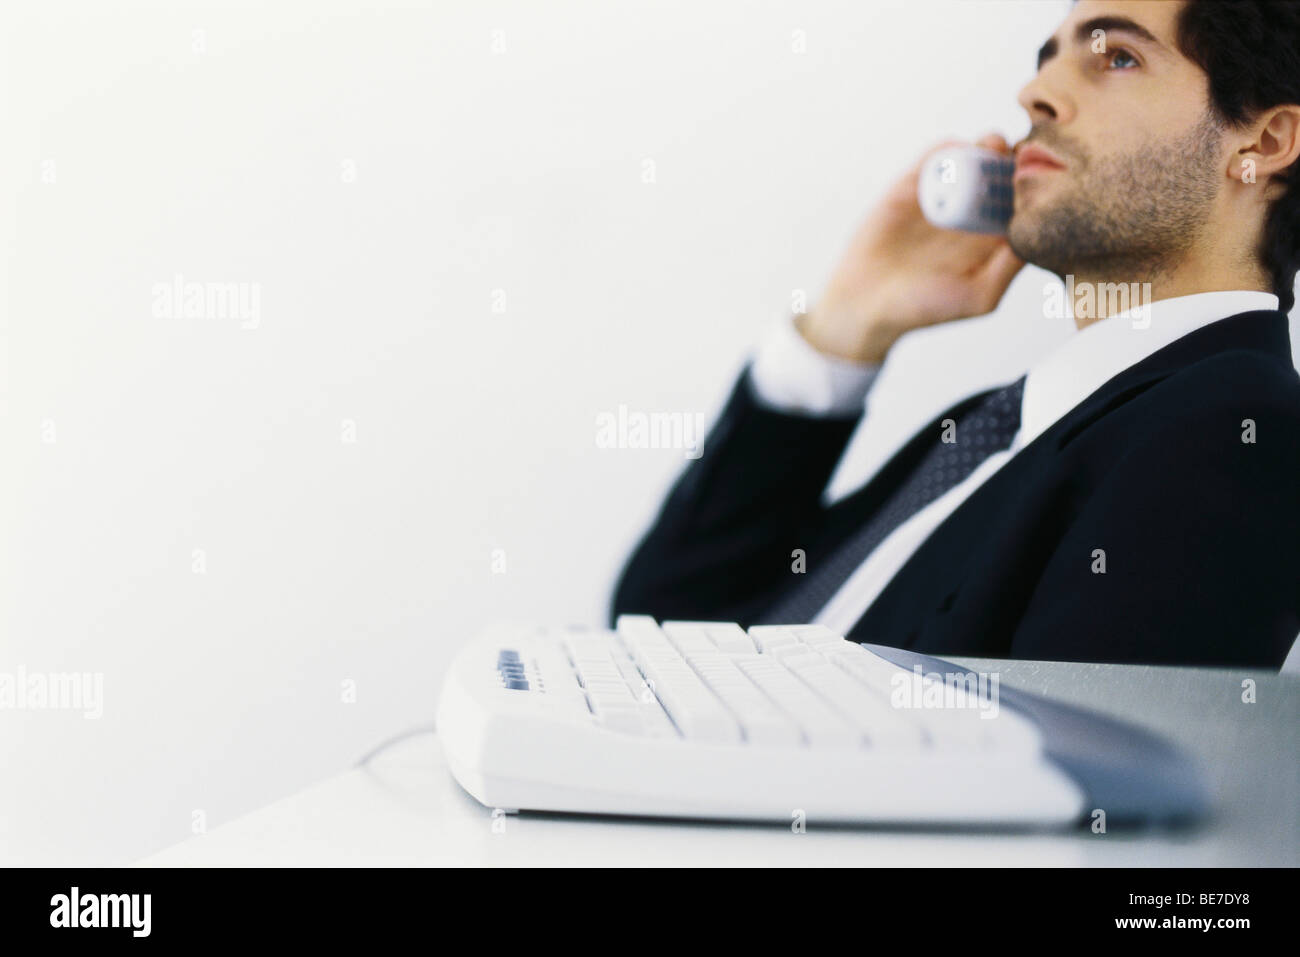 Businessman on phone call, leaning back, looking away - Stock Image